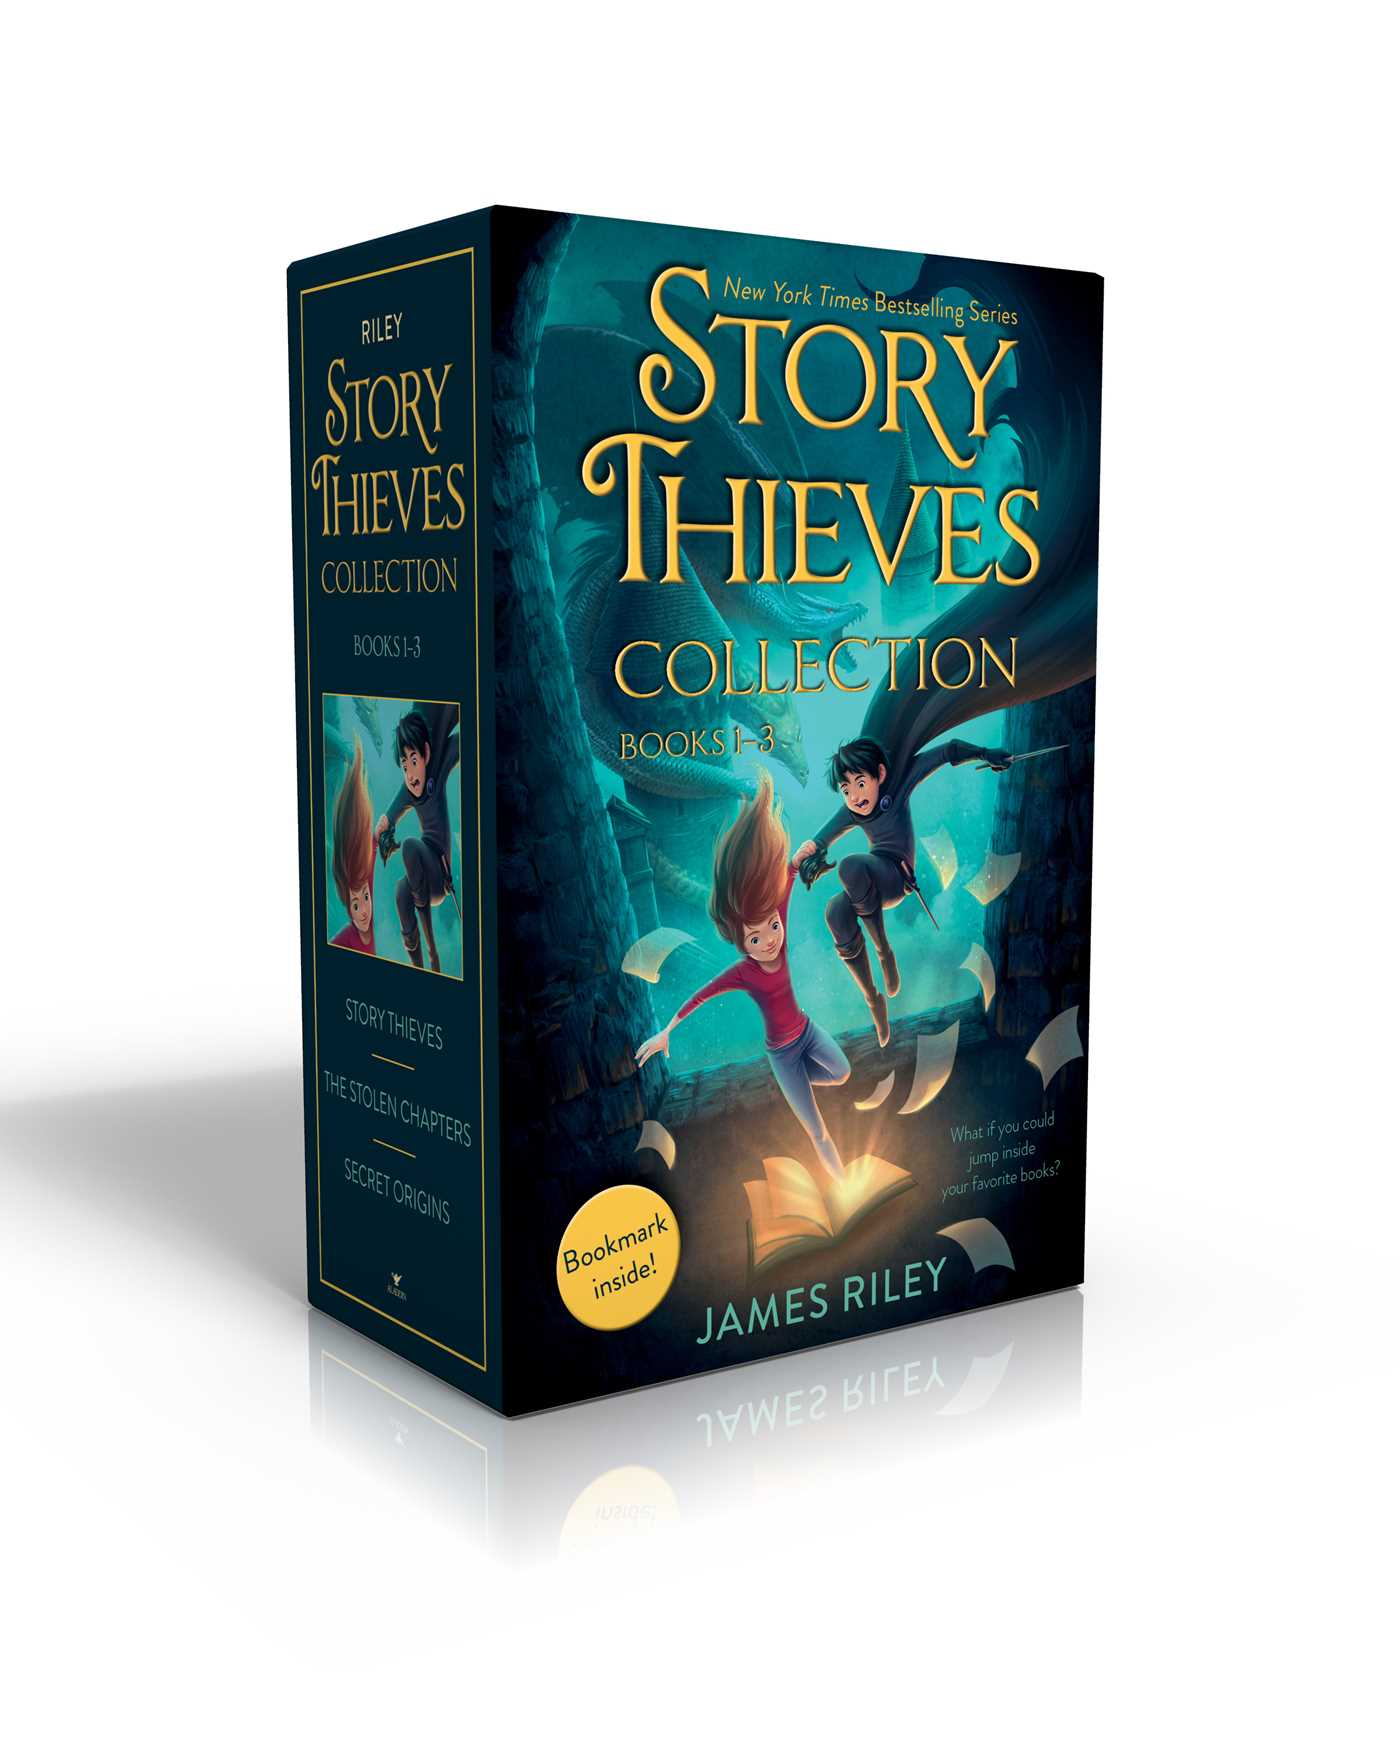 Story thieves collection books 1 3 bookmark inside 9781534414747 hr